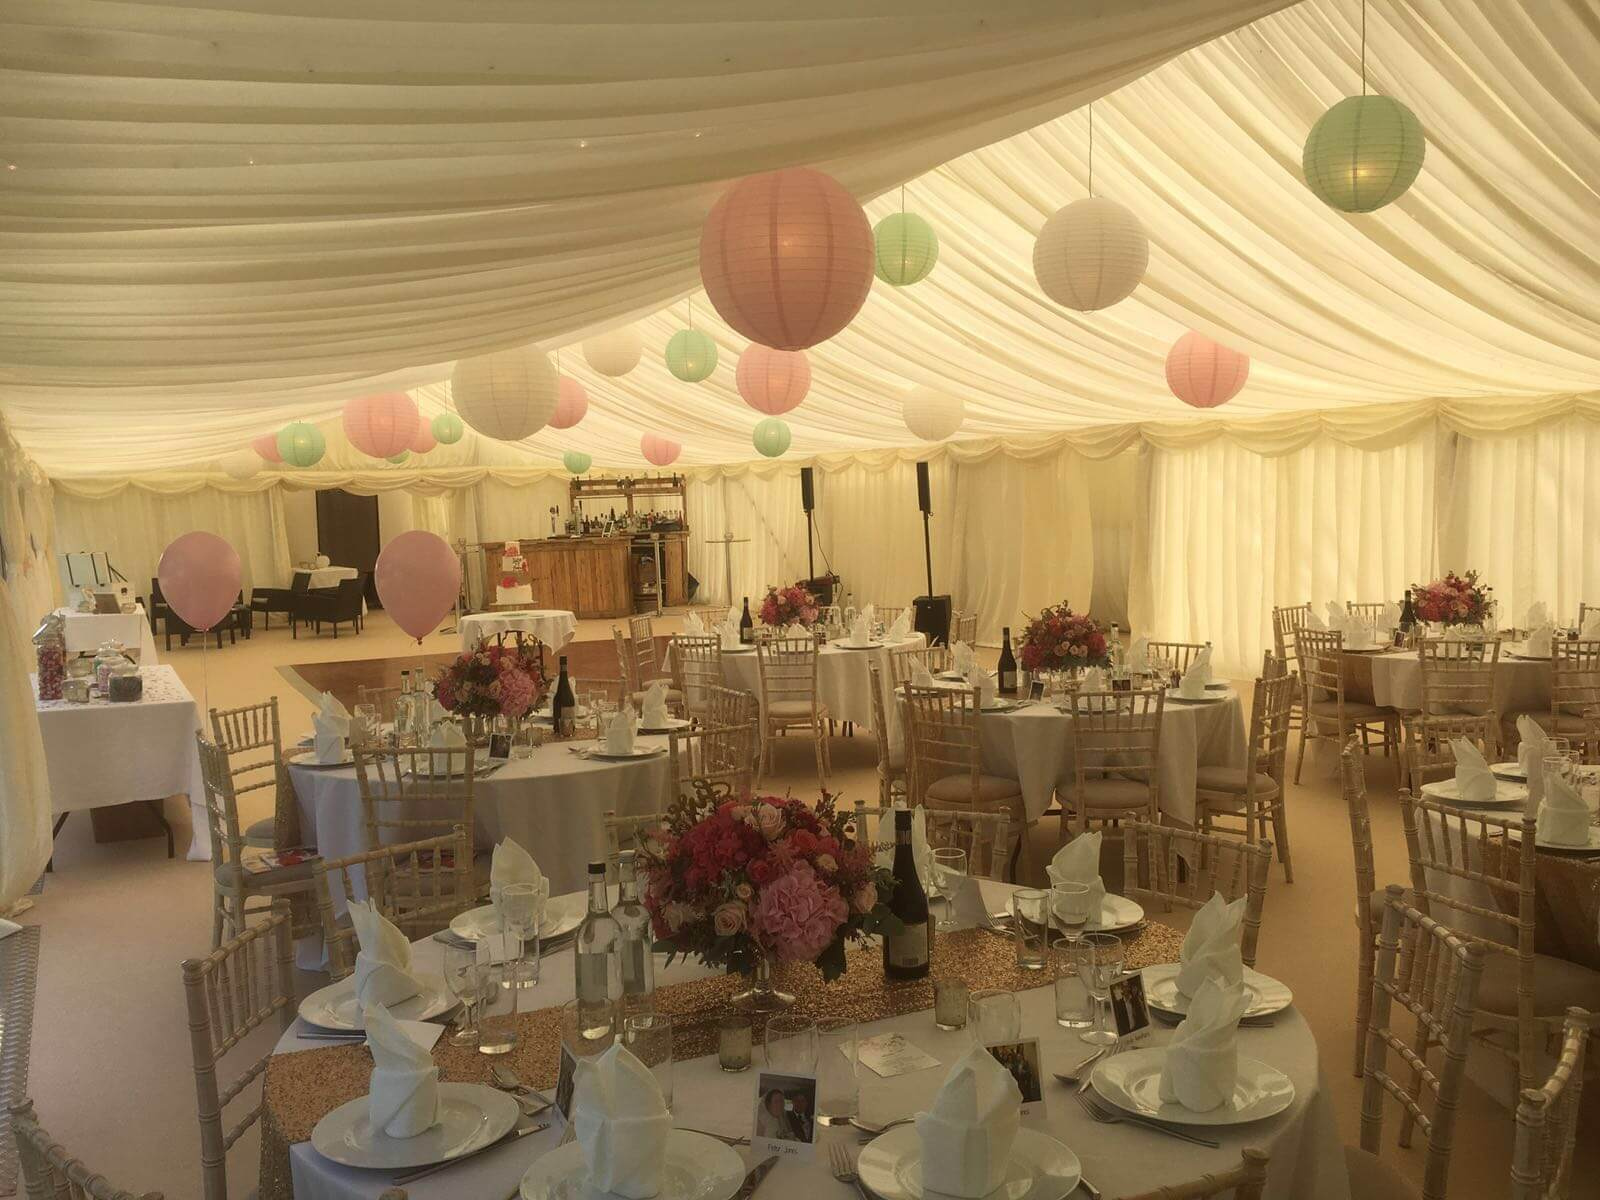 Wedding marquee, ivory pleasted linings and lanterns